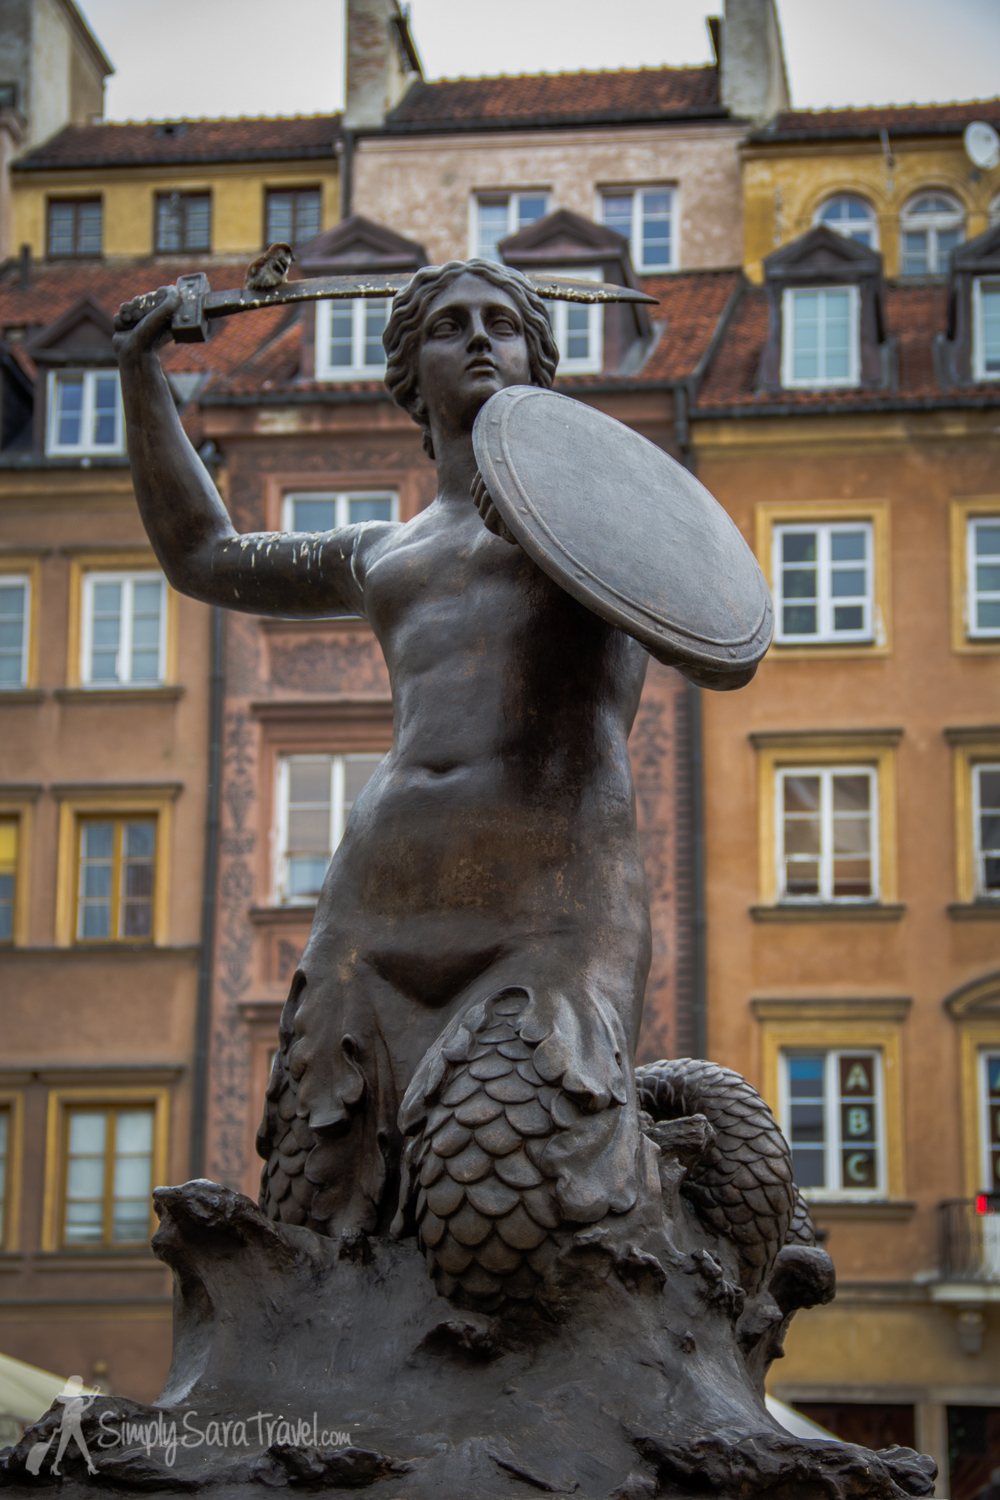 The symbol of Warsaw, a fierce mermaid